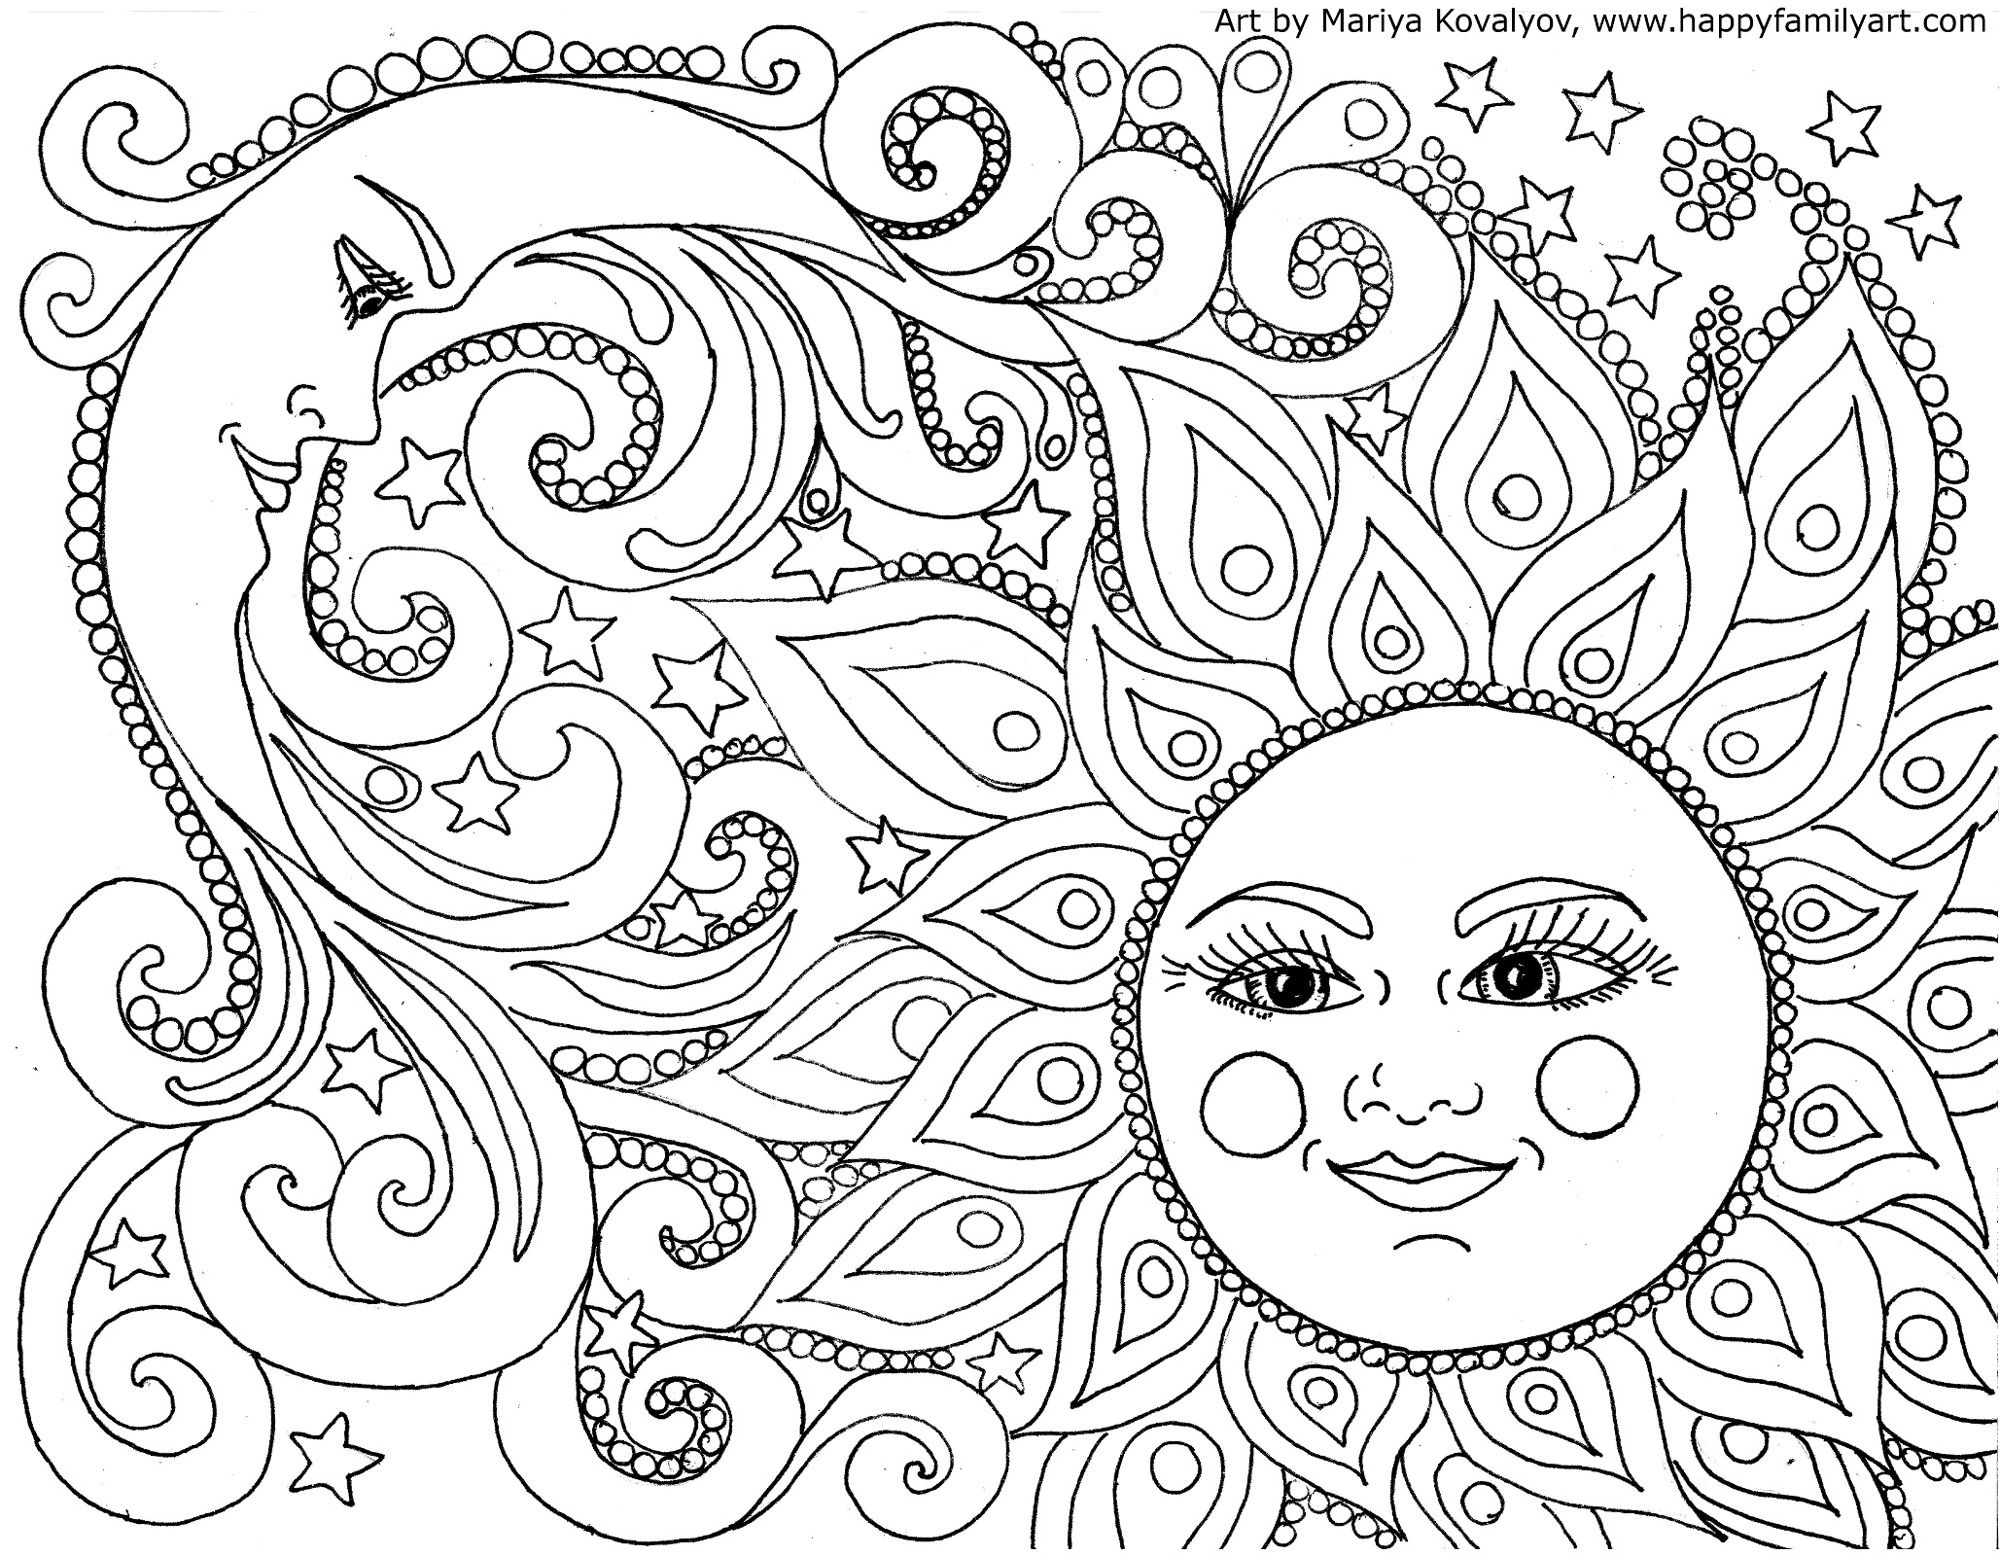 Coloring pages relaxing - I Made Many Great Fun And Original Coloring Pages Color Your Heart Out